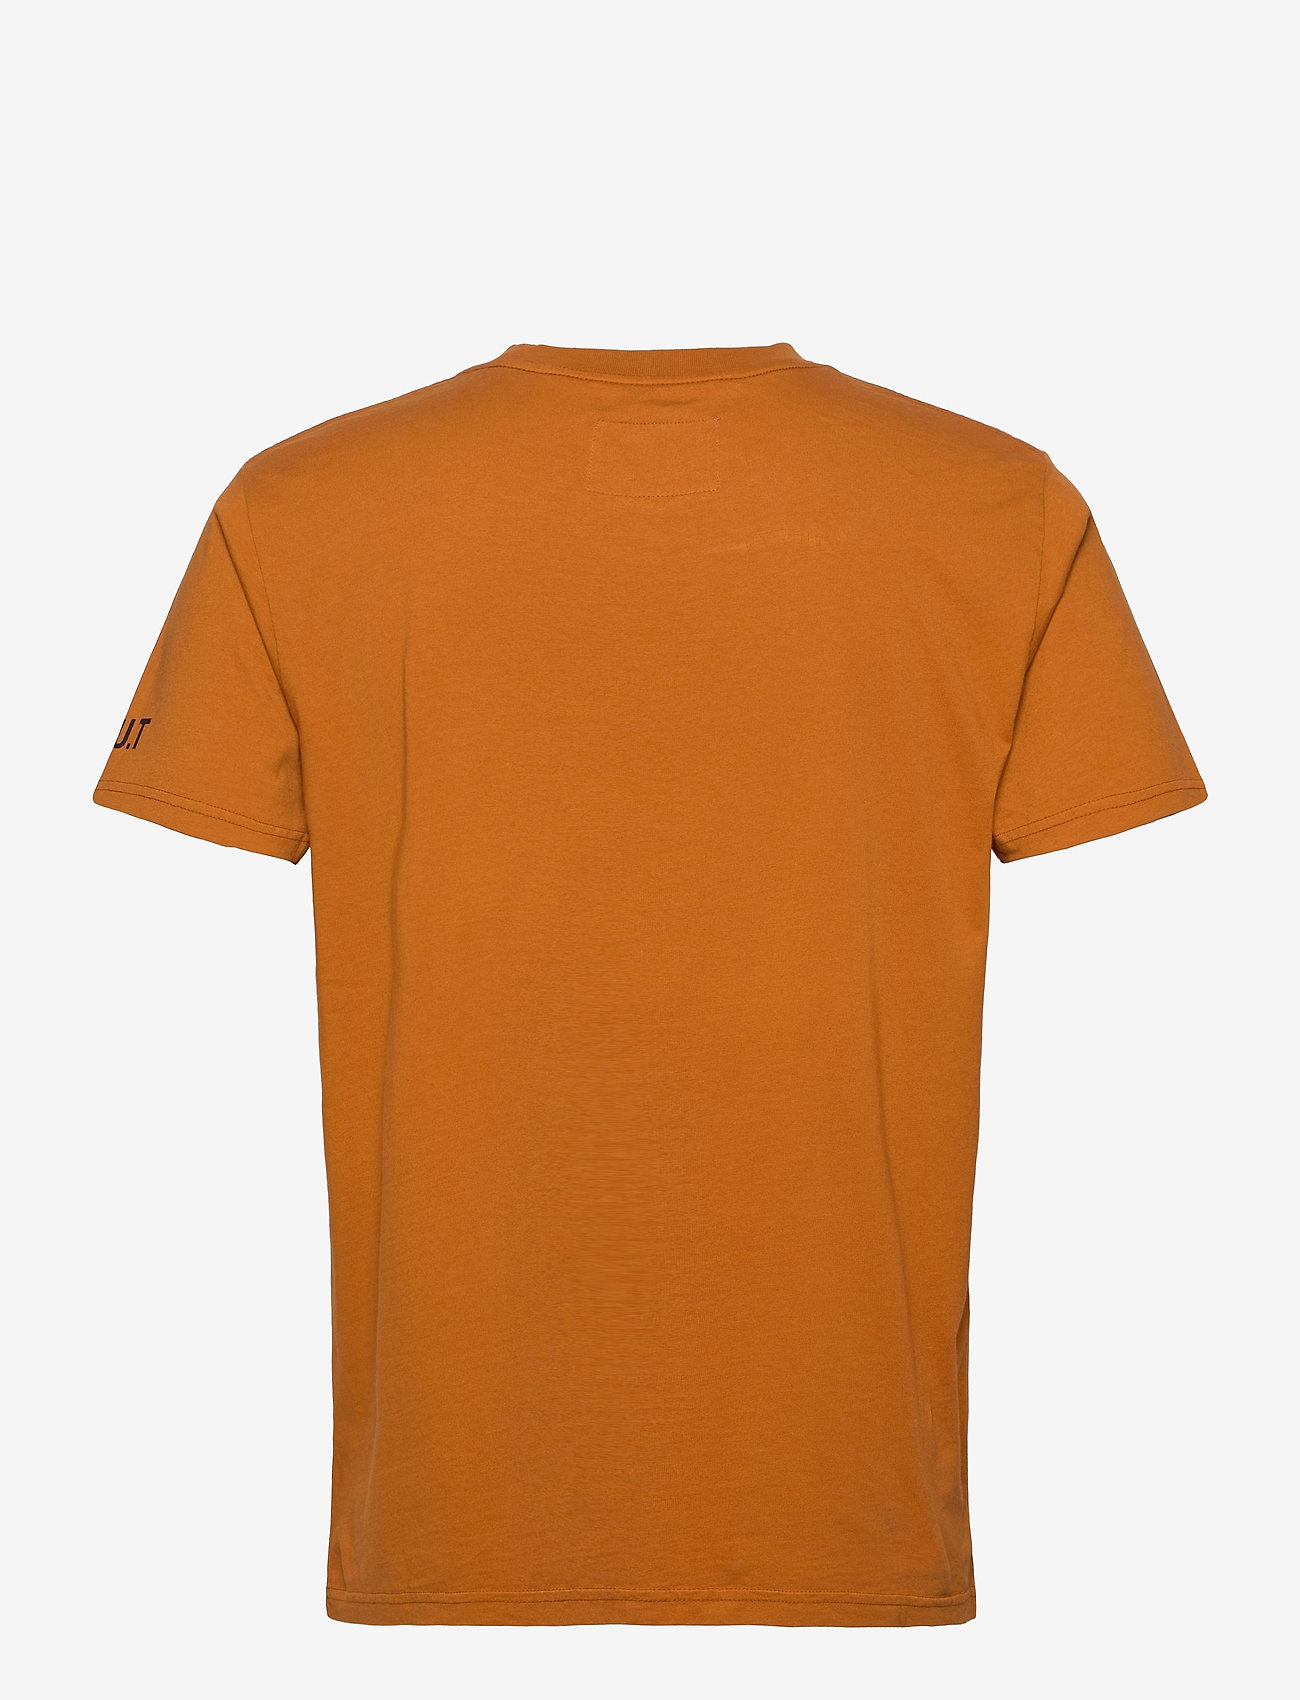 HALO HALO Cotton Tee - T-skjorter RUST ORANGE - Menn Klær